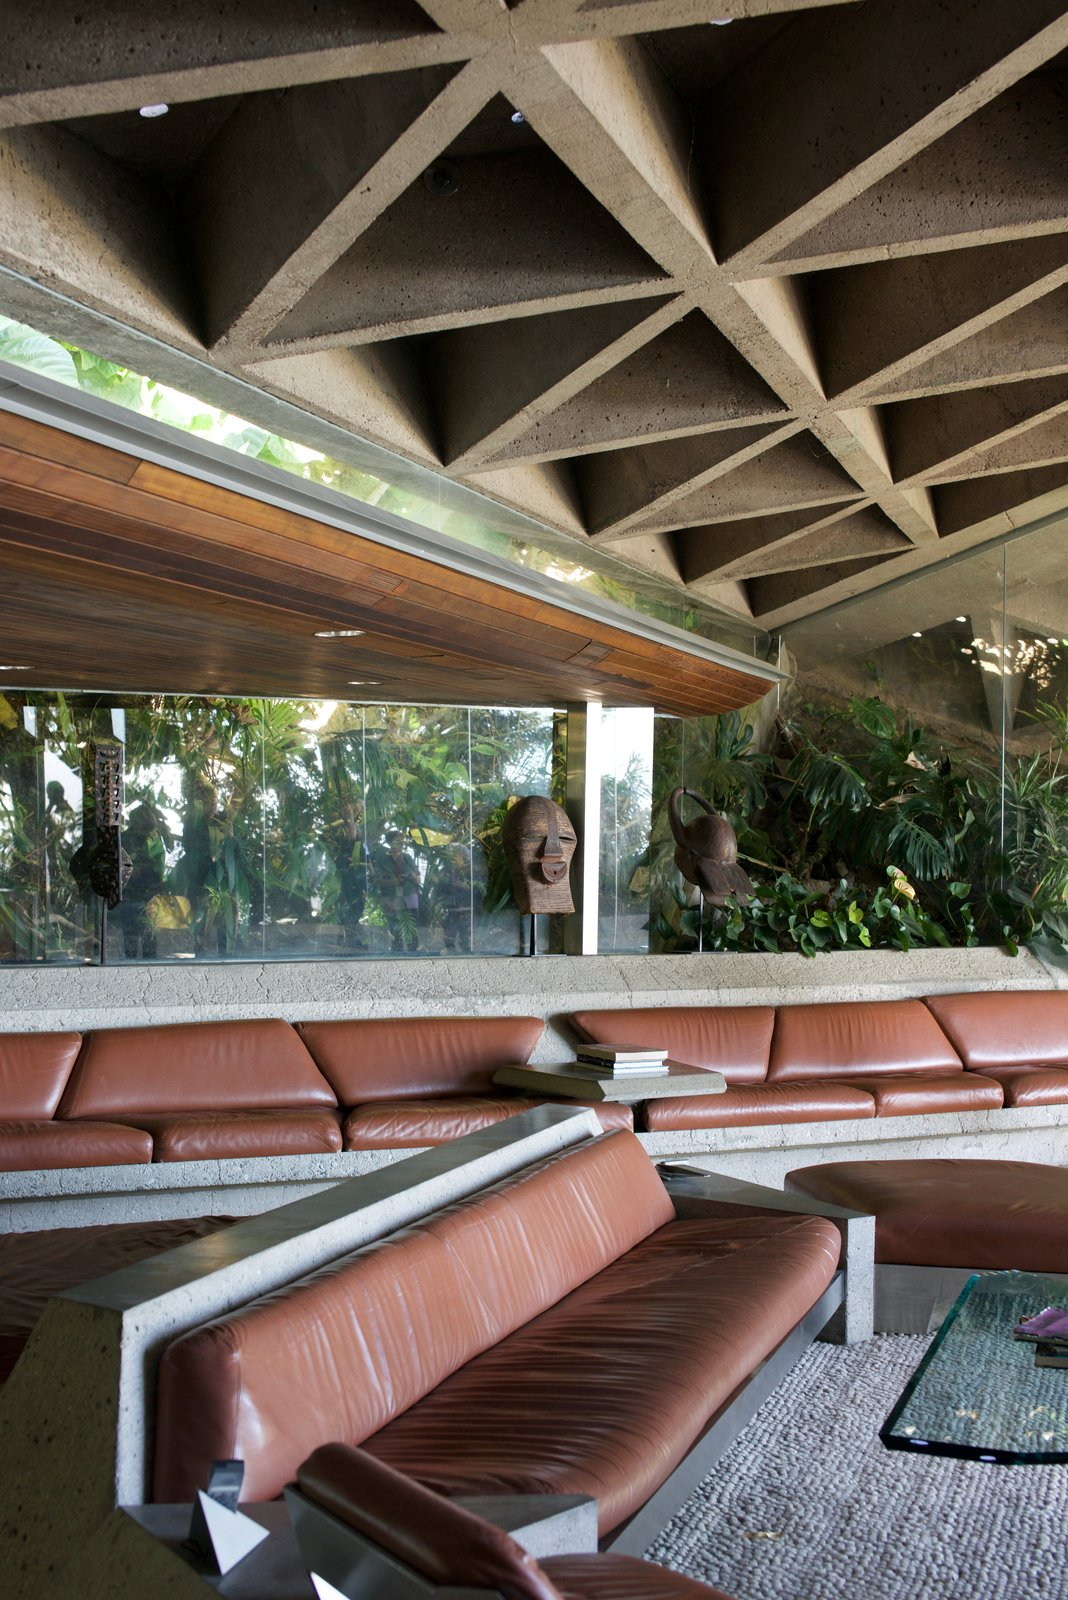 The famous living room is filled with custom leather-and-concrete sofas and geometric concrete ceilings.  Behind the Scenes at John Lautner's Sheats-Goldstein Residence